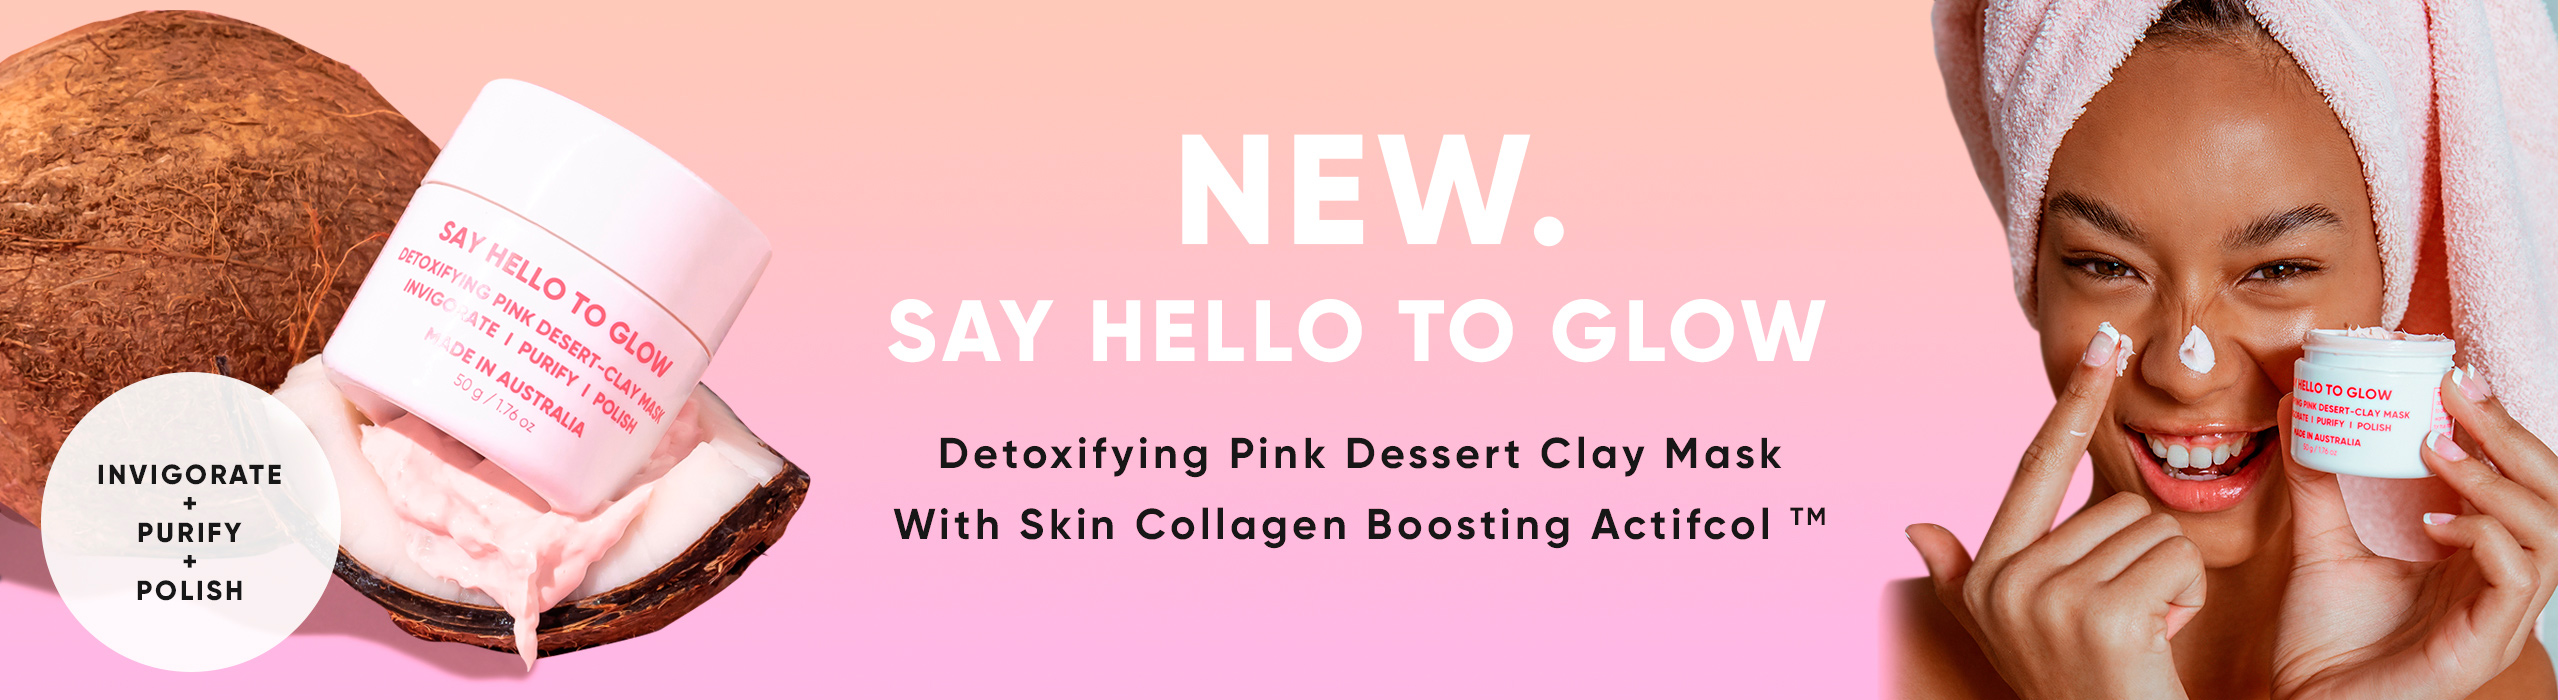 NEW. SAY HELLO TO GLOW | Detoxifying Pink Dessert Clay Mask With Skin Collagen Boosting Actifol™